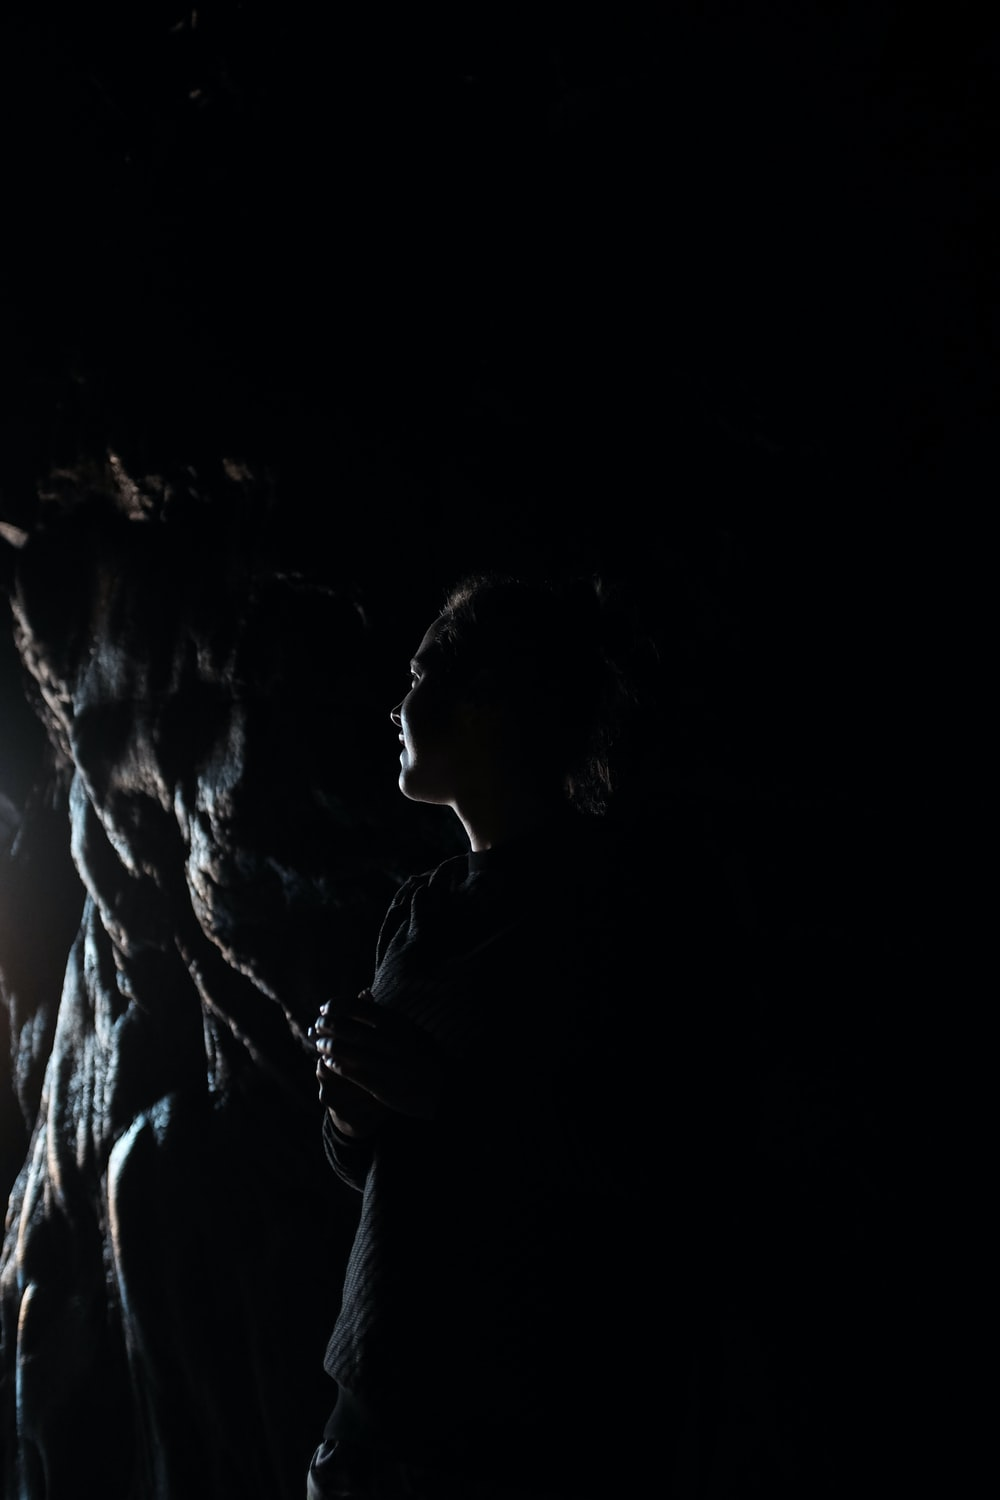 man and woman kissing in dark room